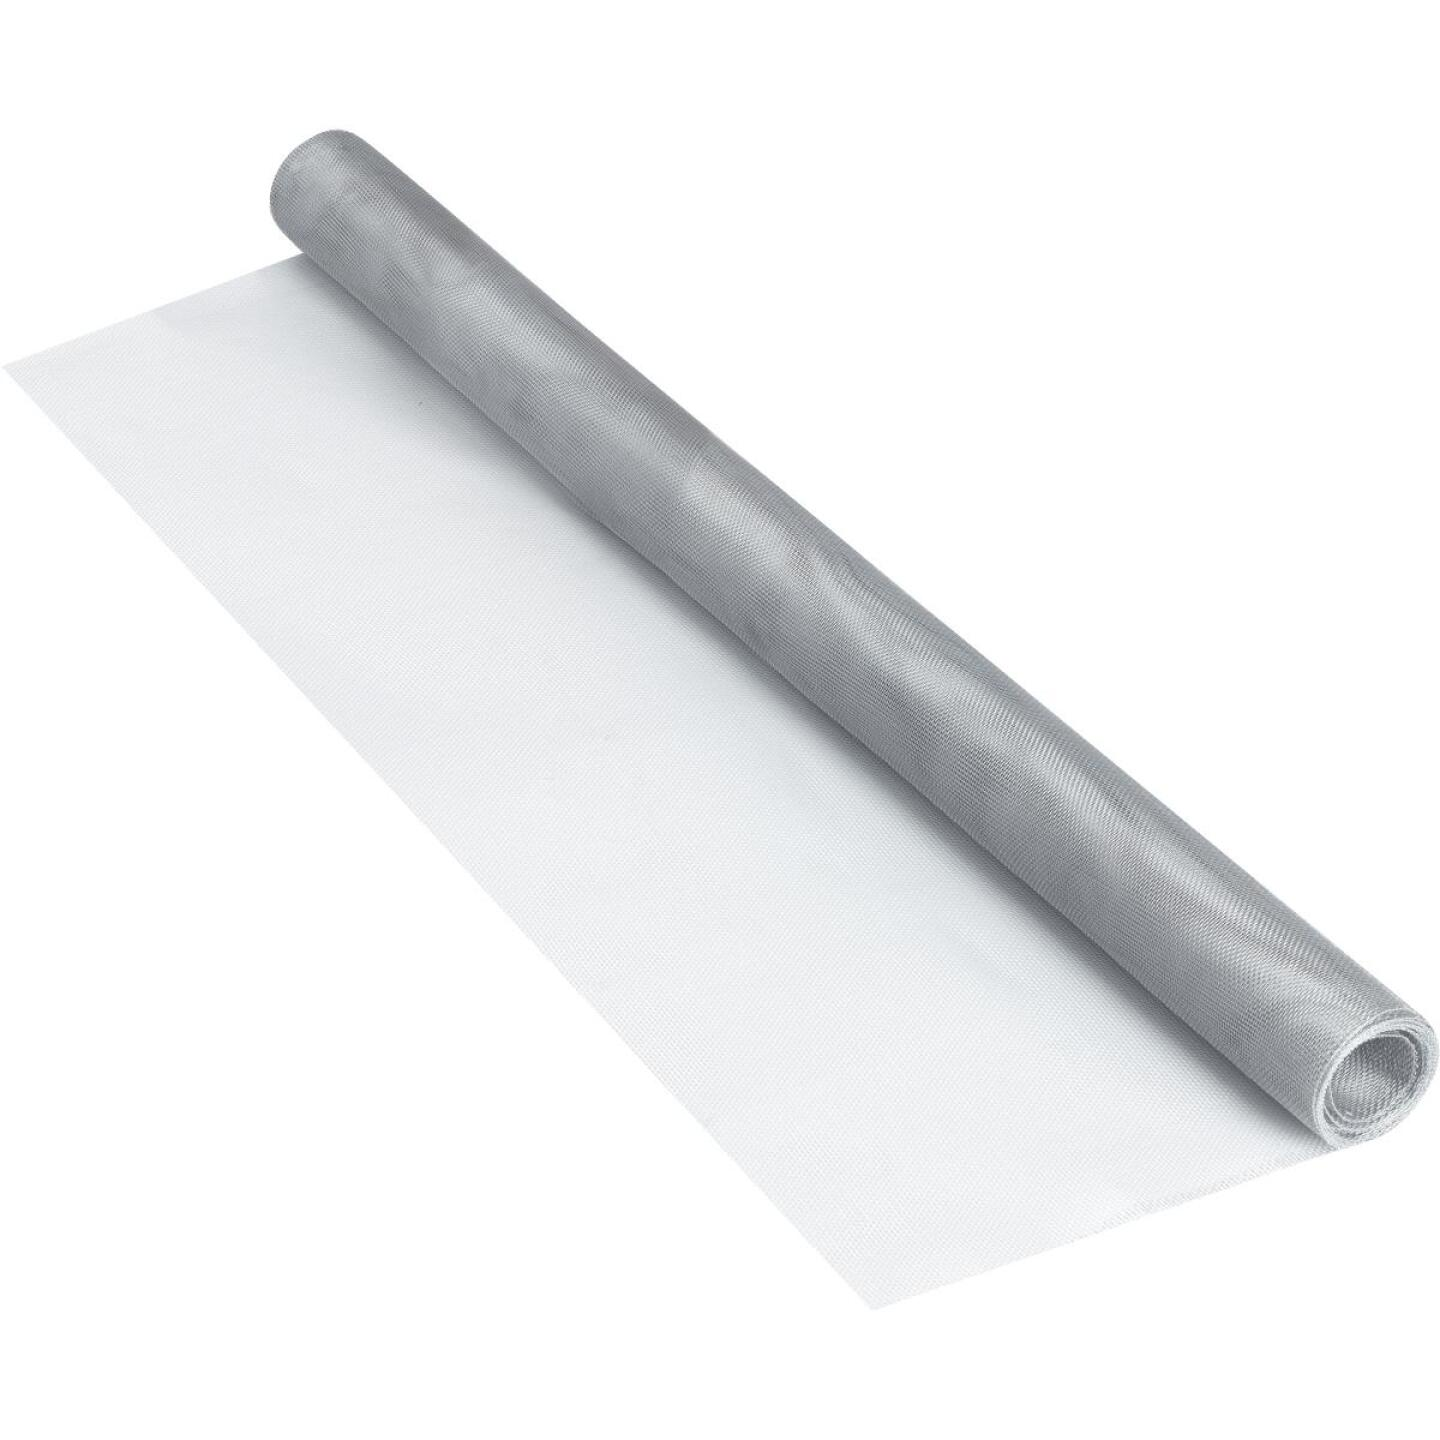 Phifer 48 In. x 84 In. Brite Aluminum Screen Ready Rolls Image 2